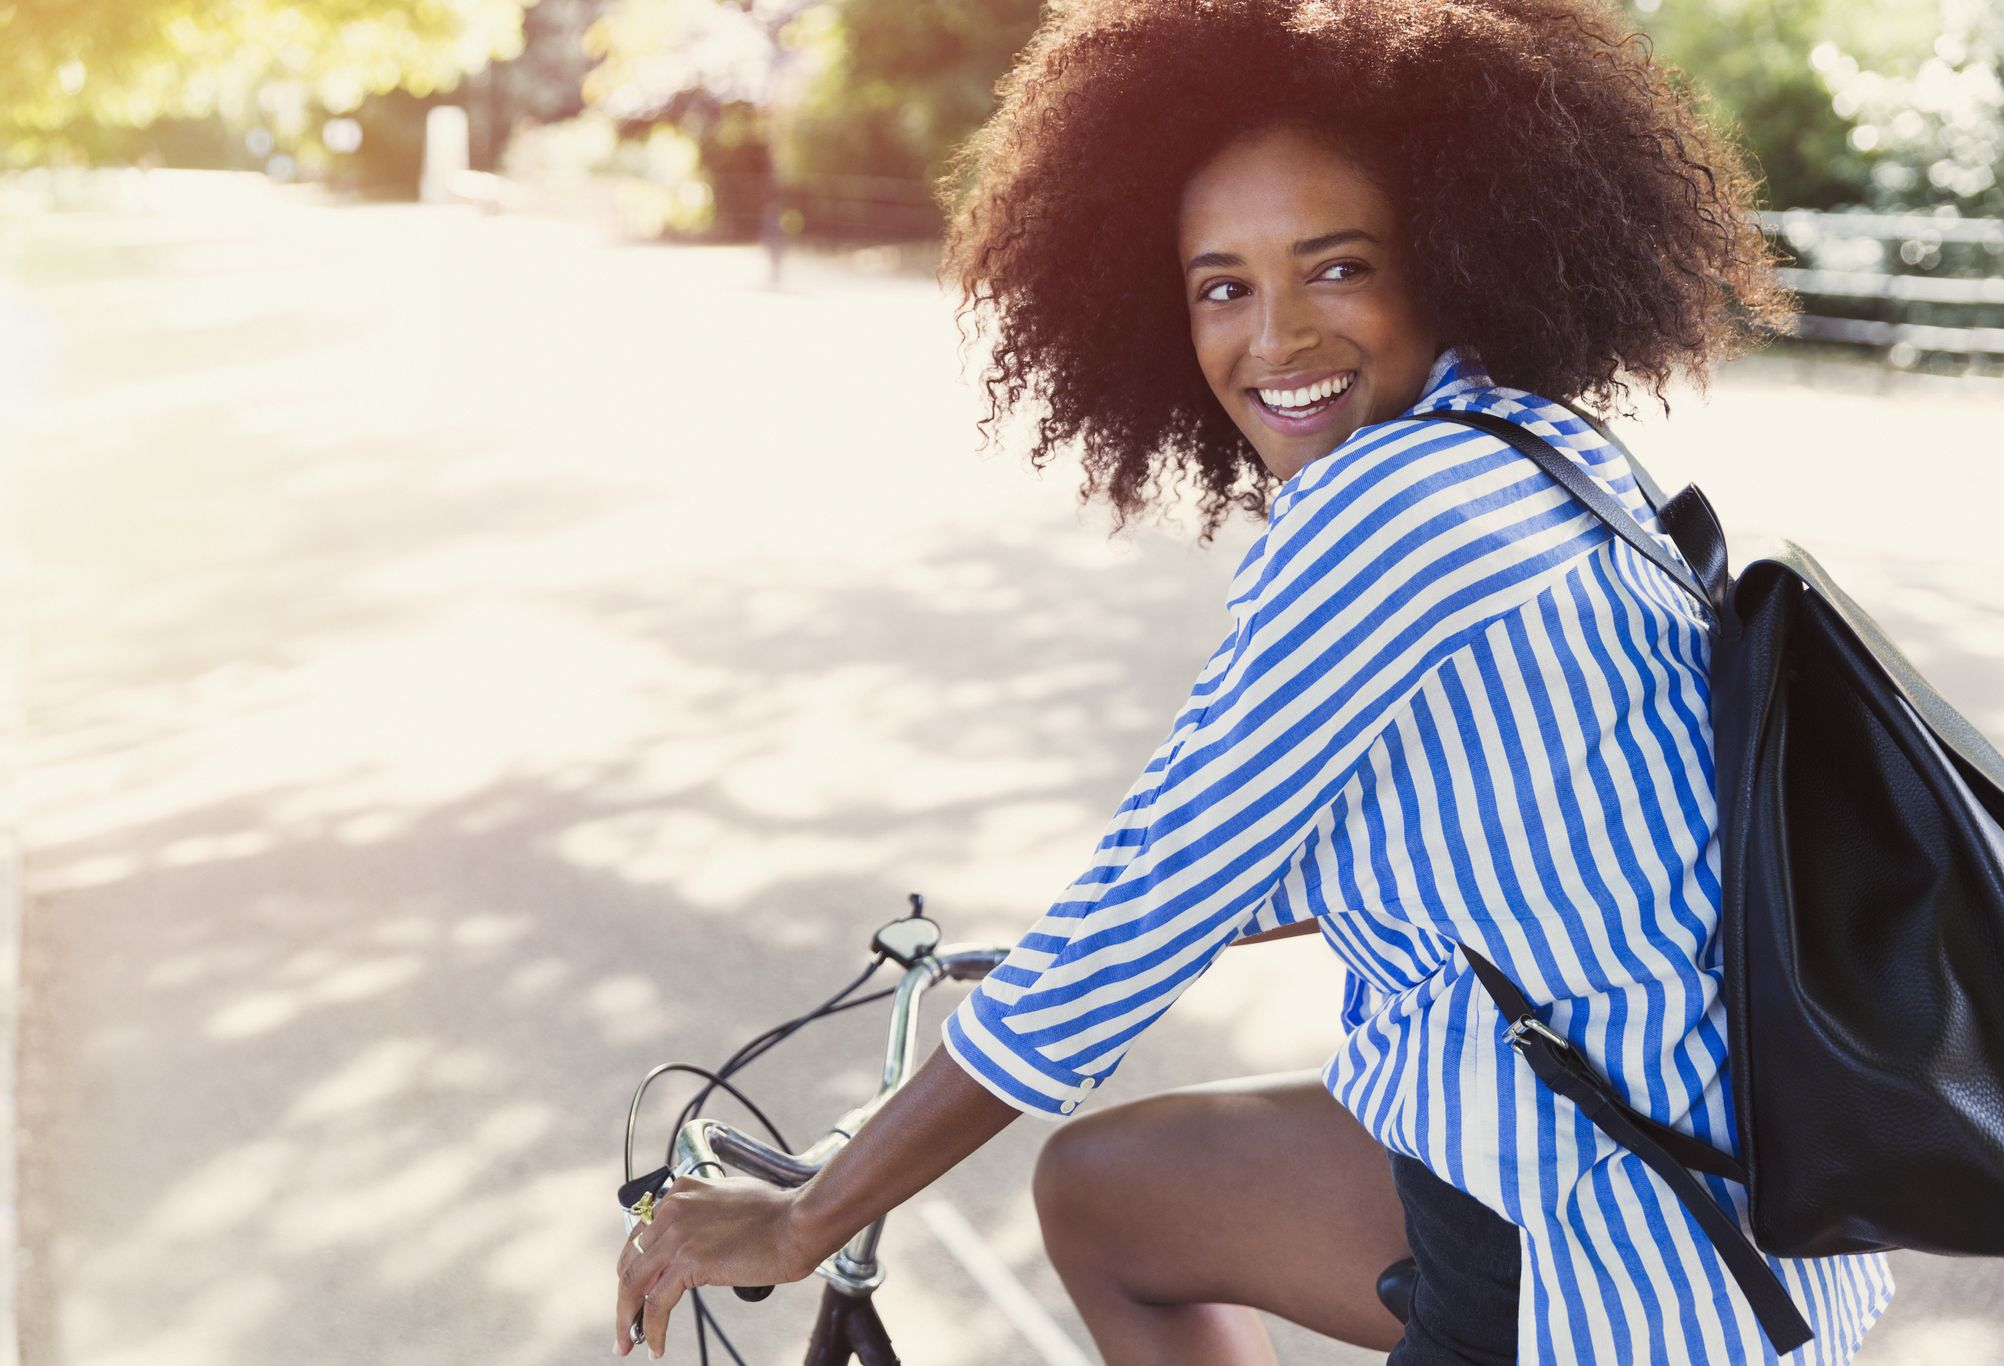 5 Unknown Benefits of Bike Riding